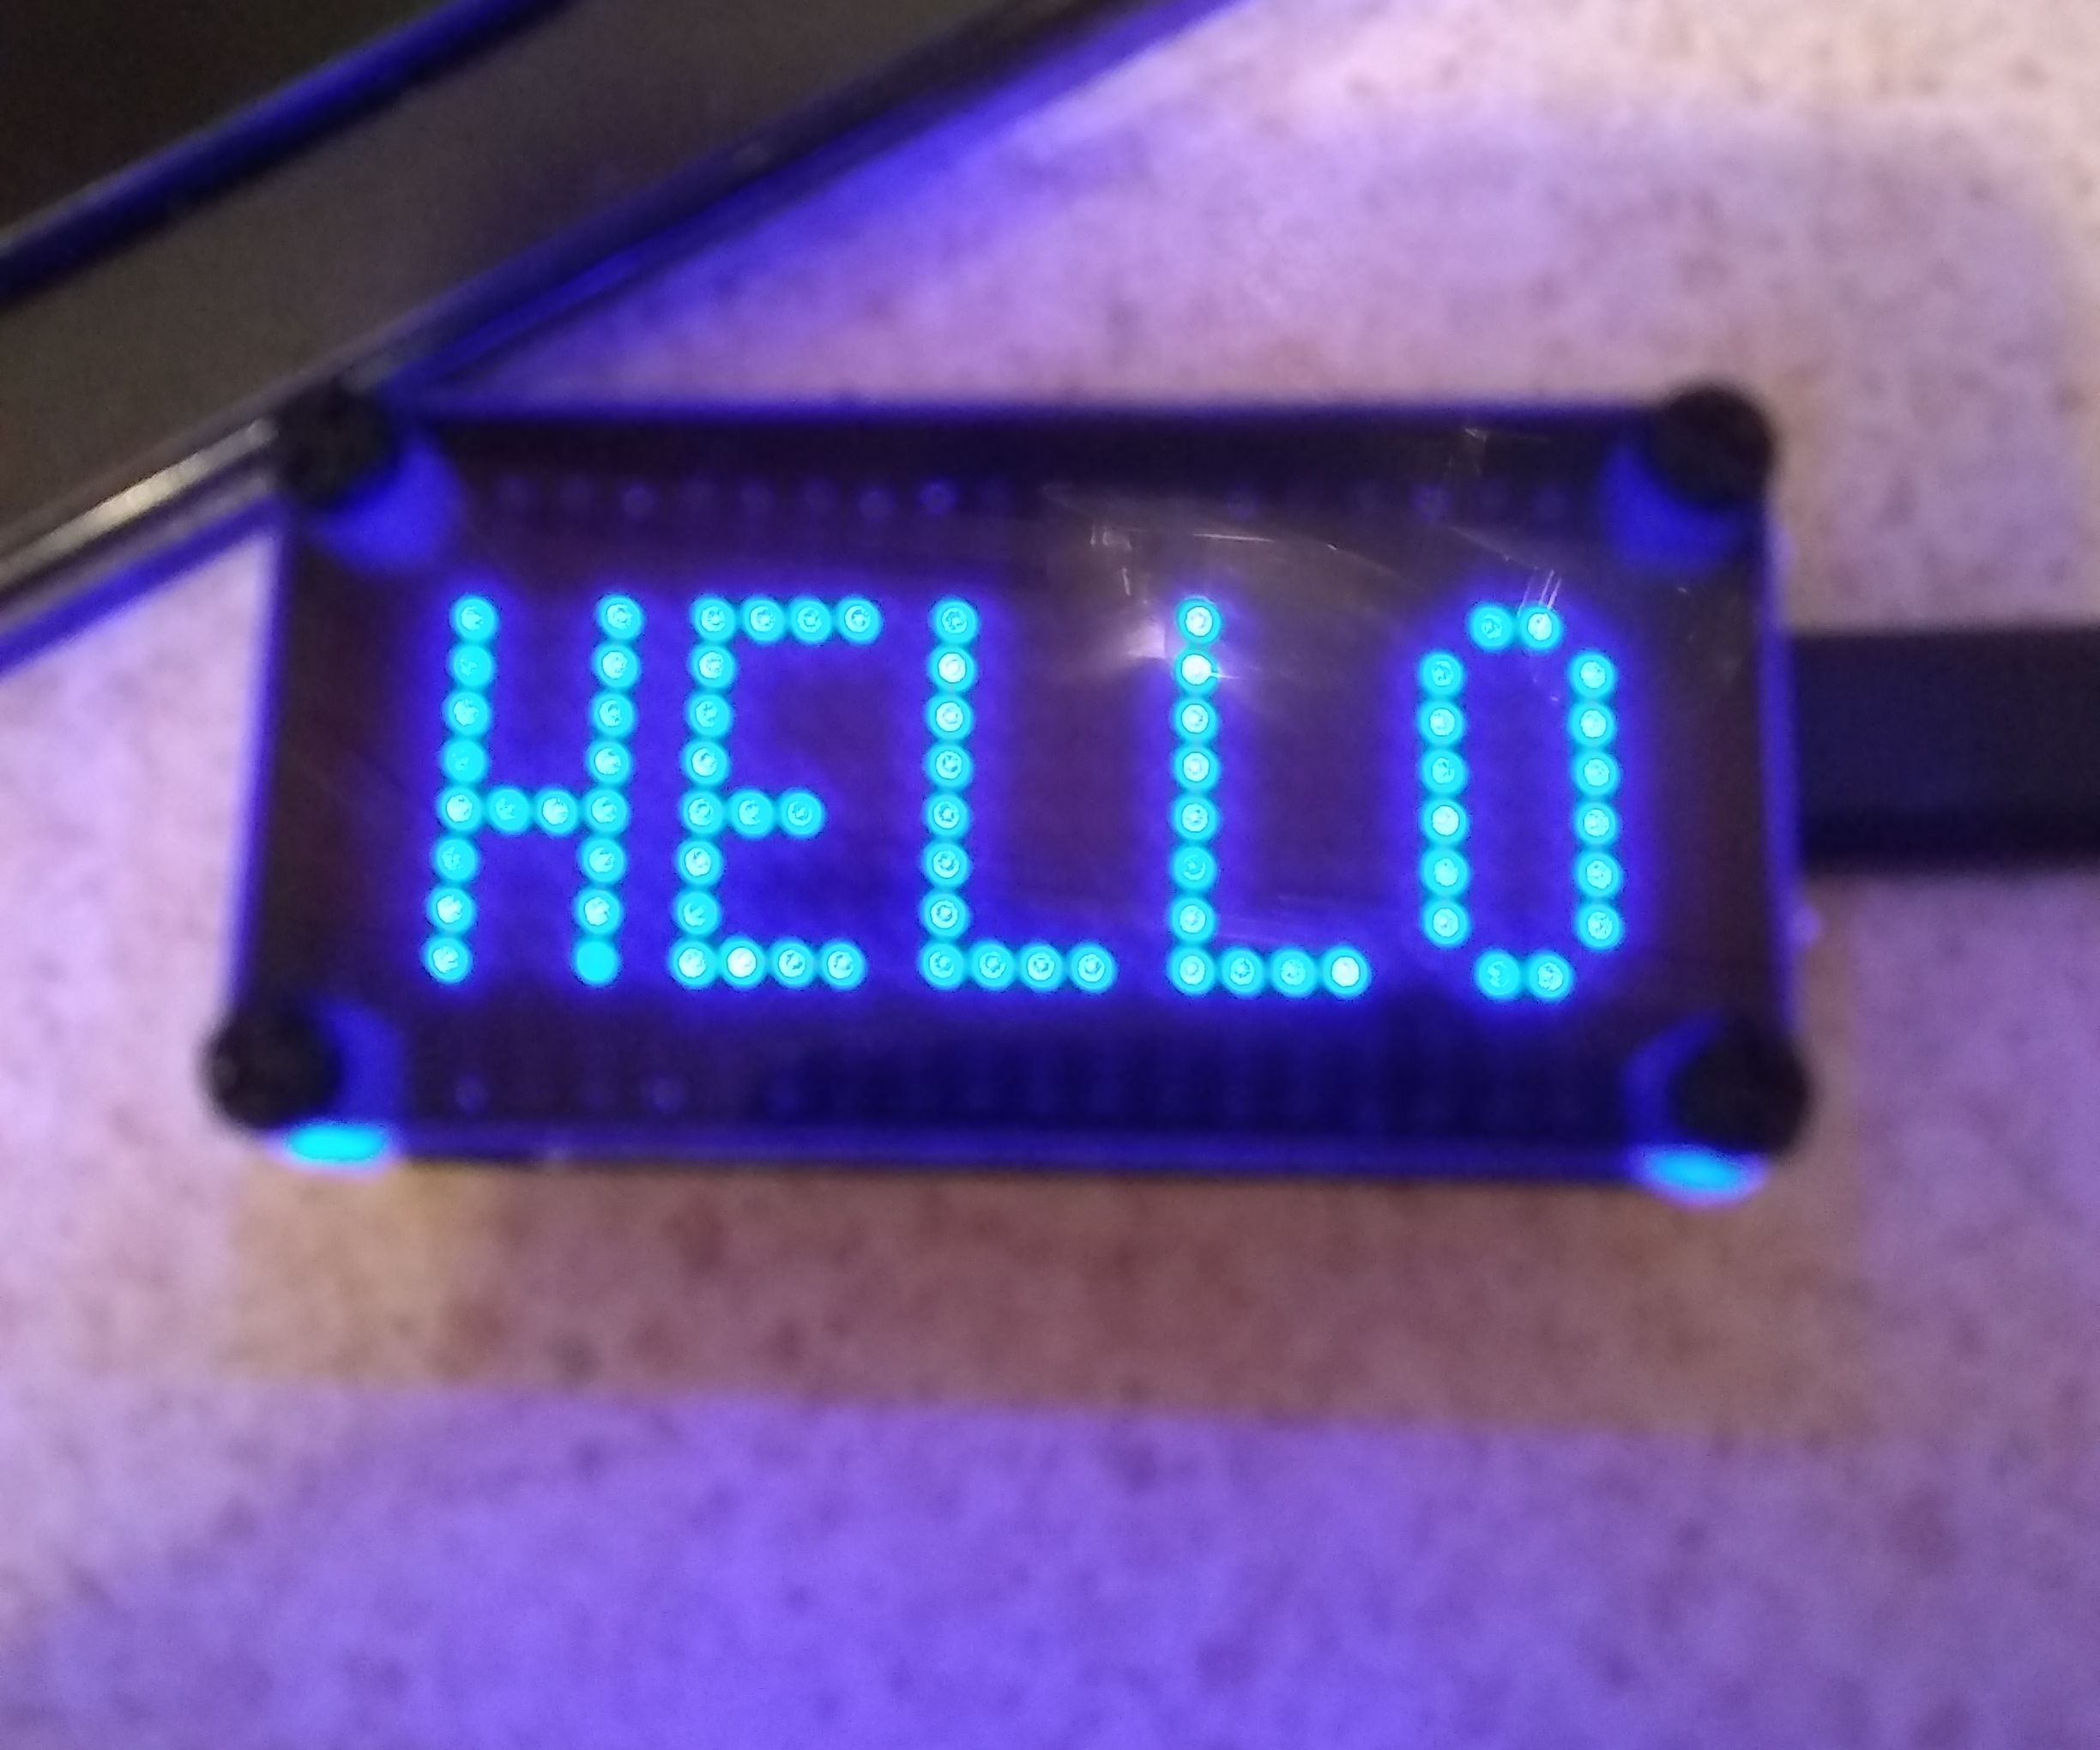 4 Projects in 1 Using DFRobot FireBeetle ESP32 & LED Matrix Cover